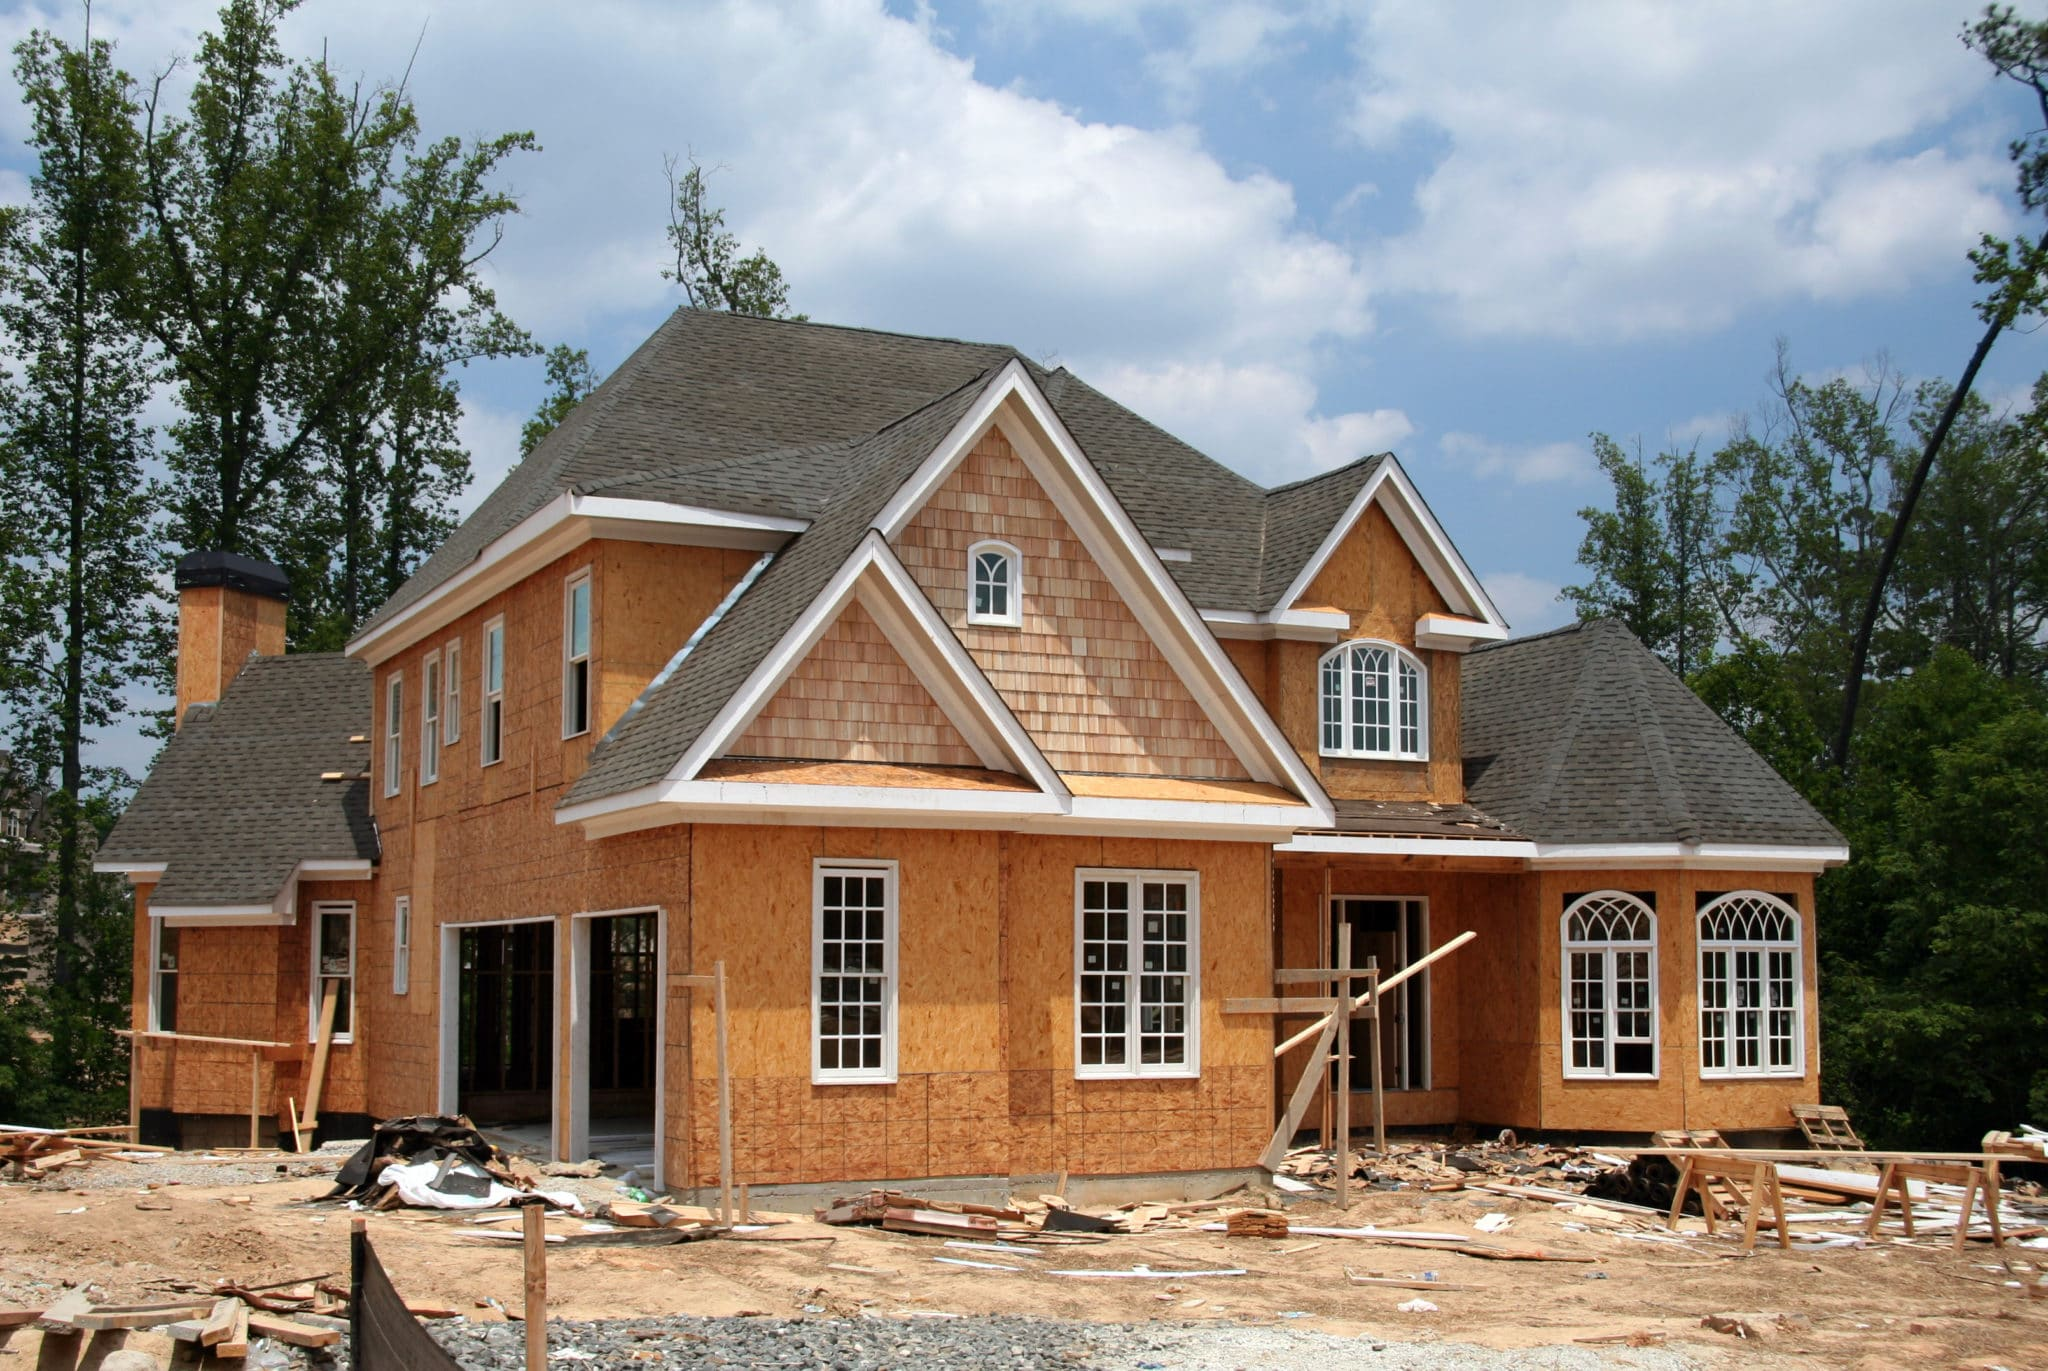 Single Family Home Under Construction